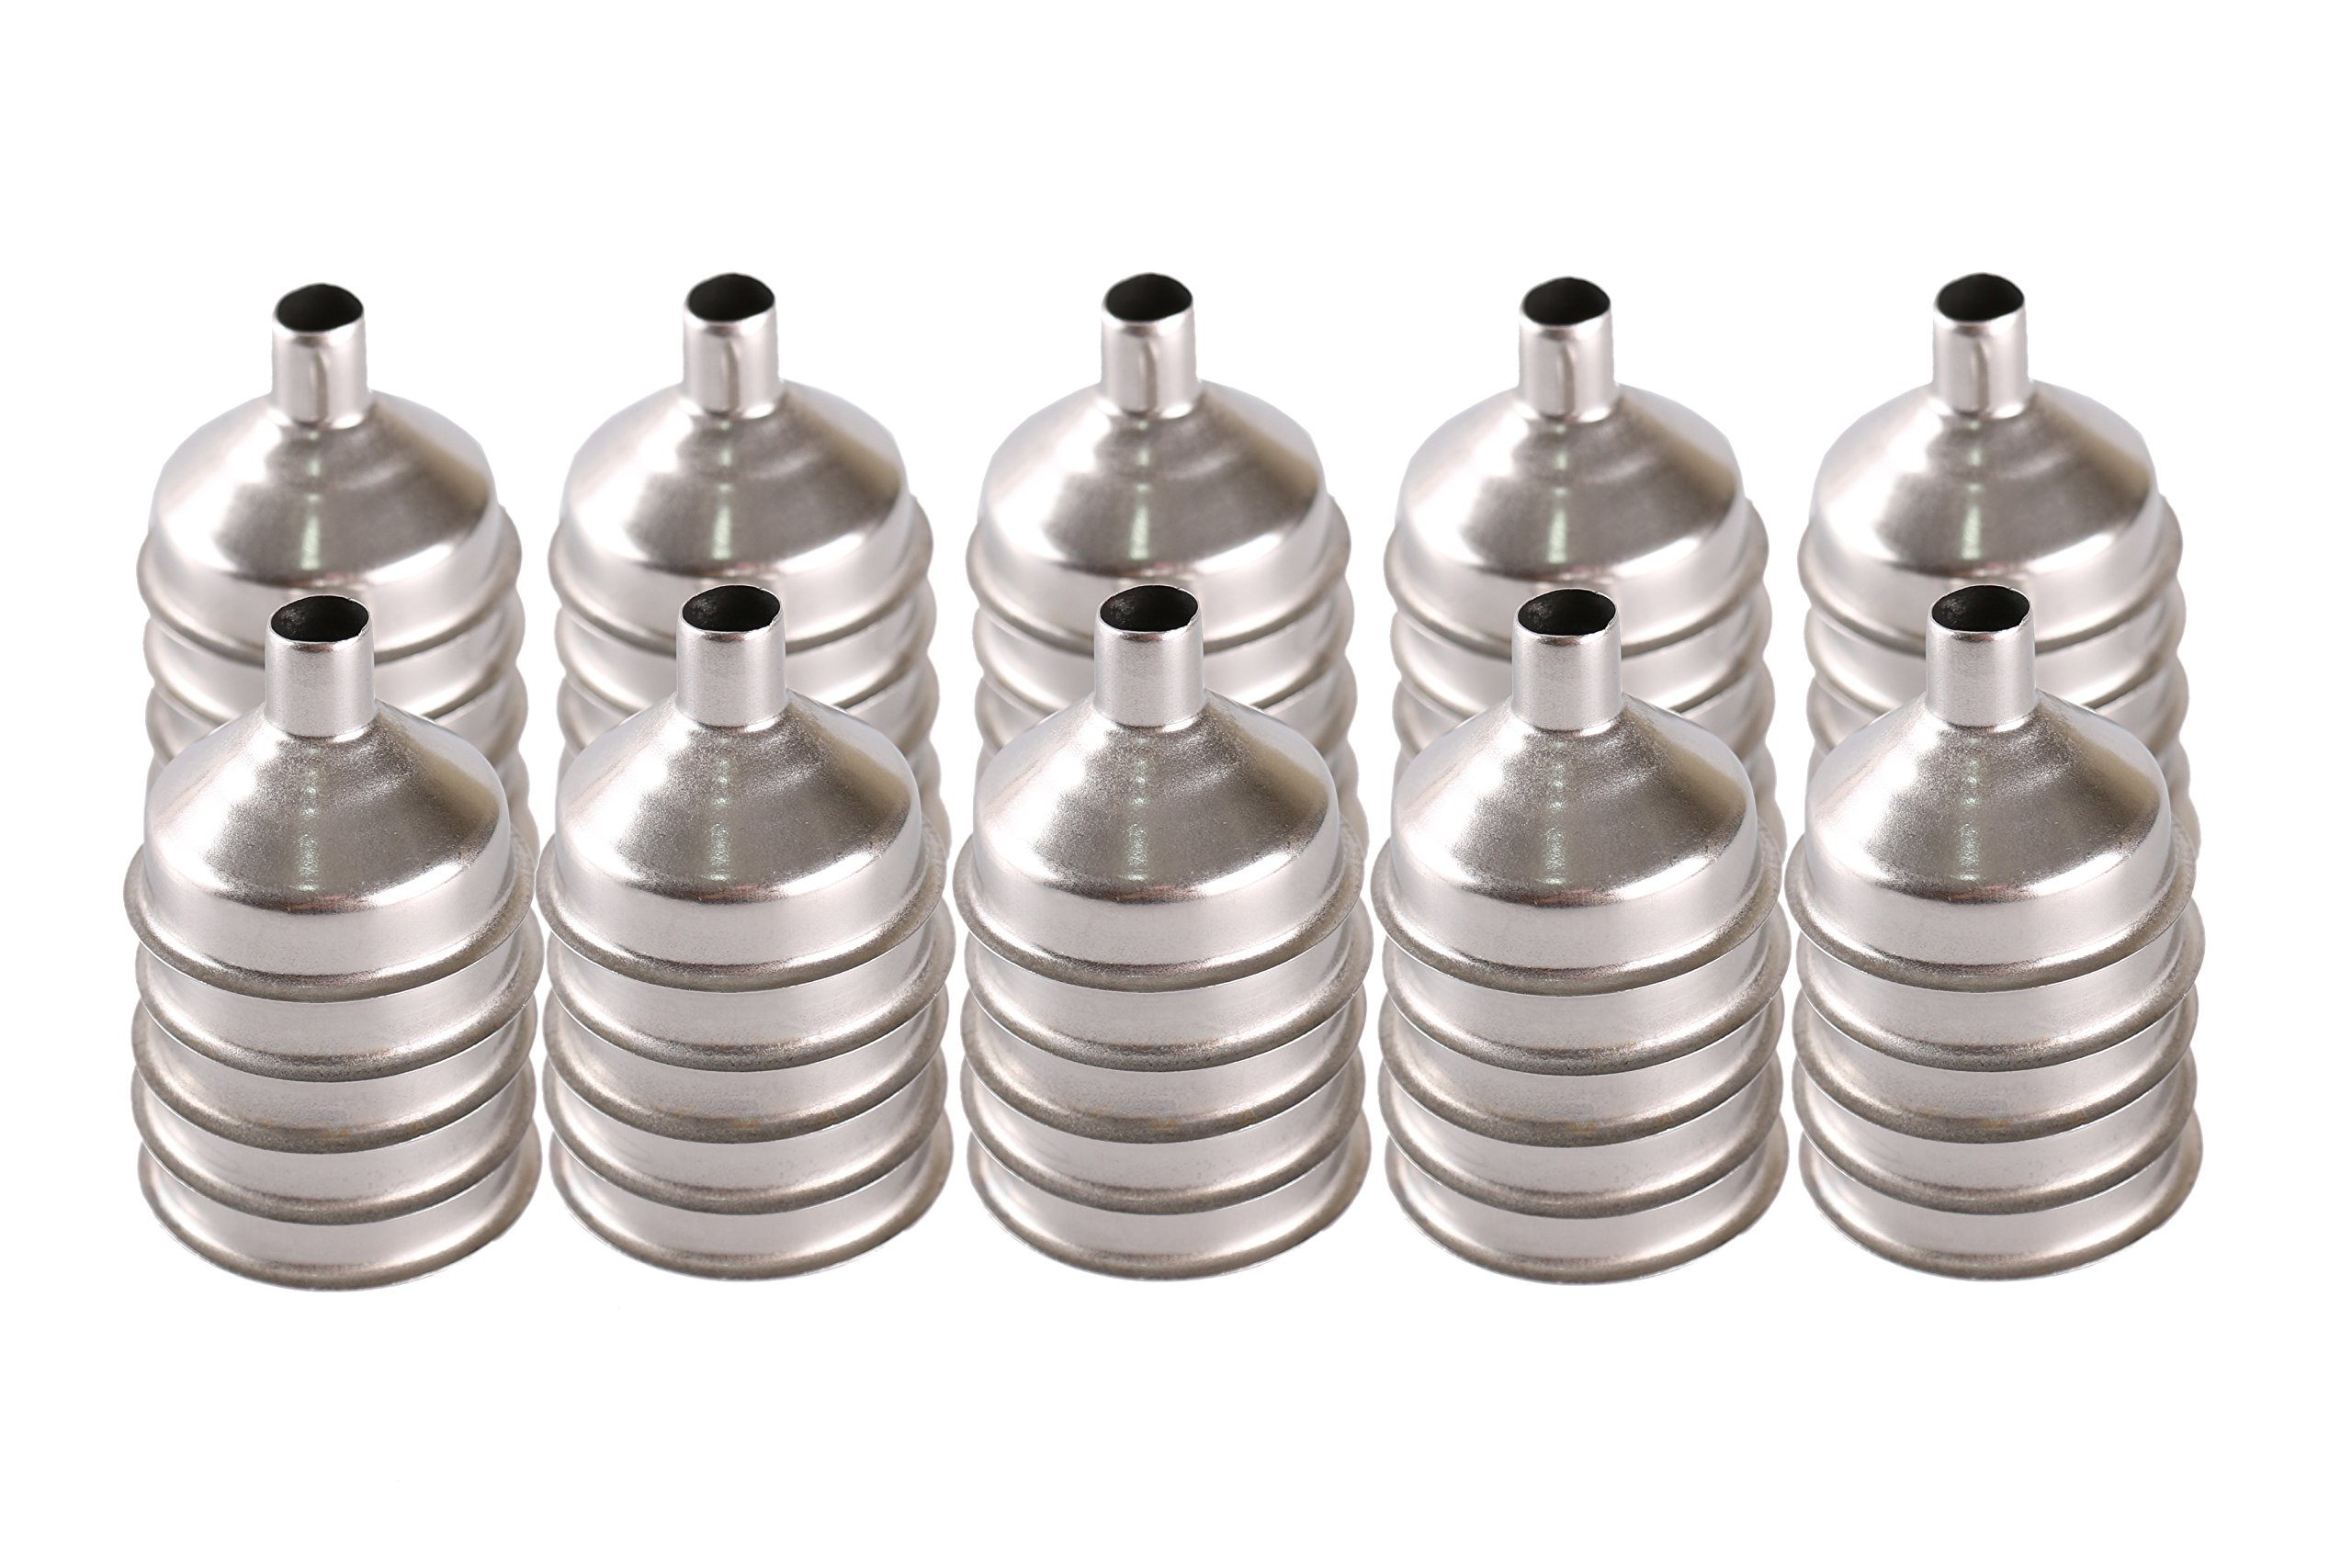 Stainless Steel Mini Funnel for Essential Oil Bottles/Flasks - Pack of 50 by Mirenlife